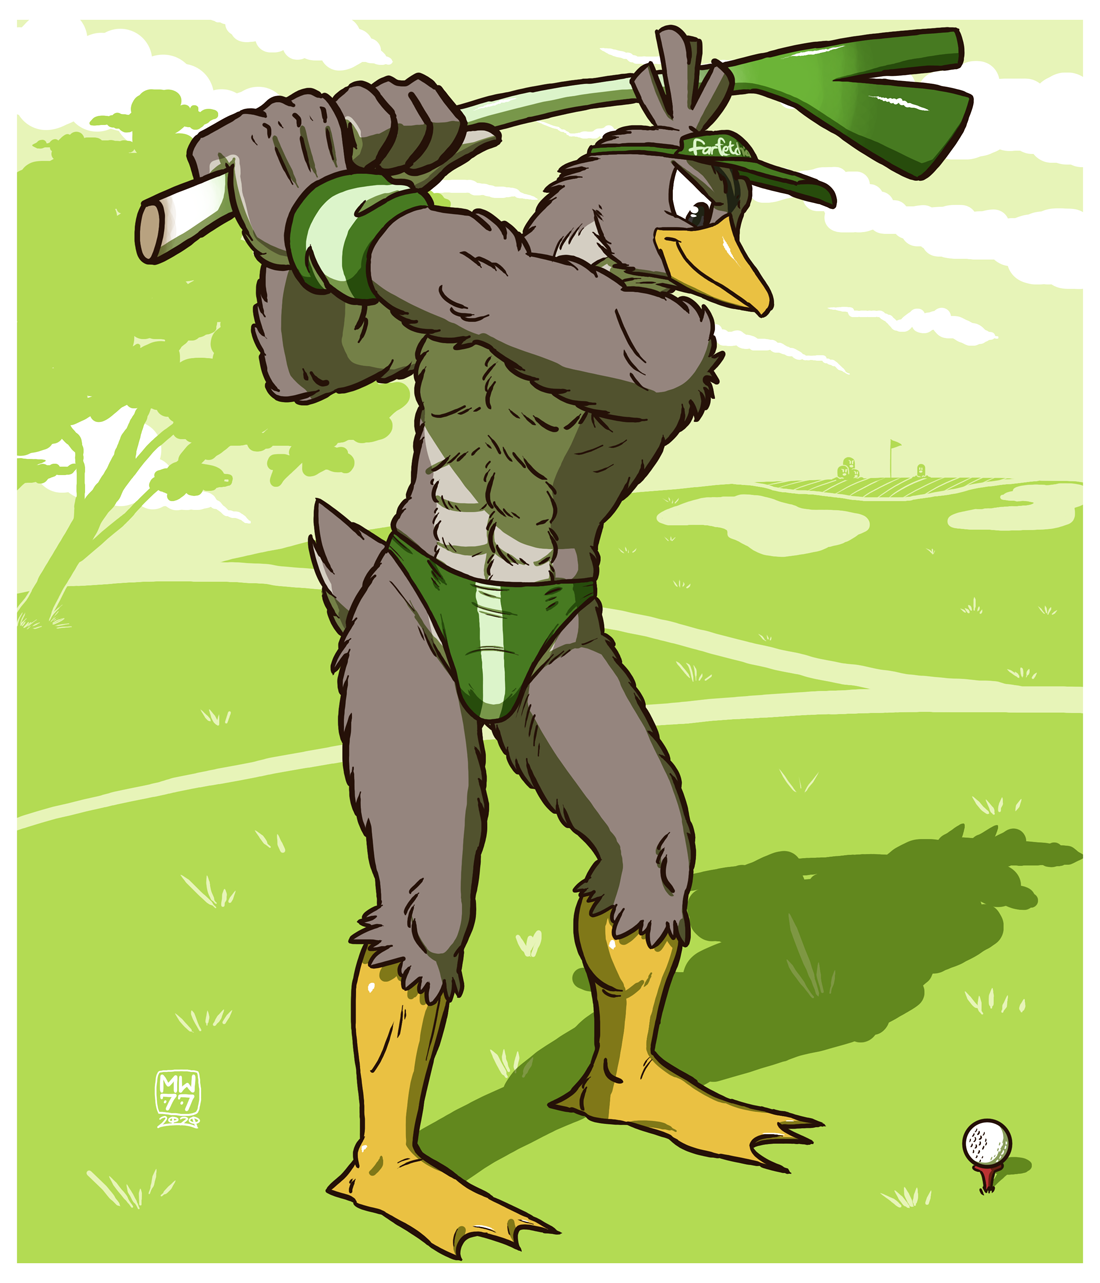 FARFETCH'D : Master of Birdie